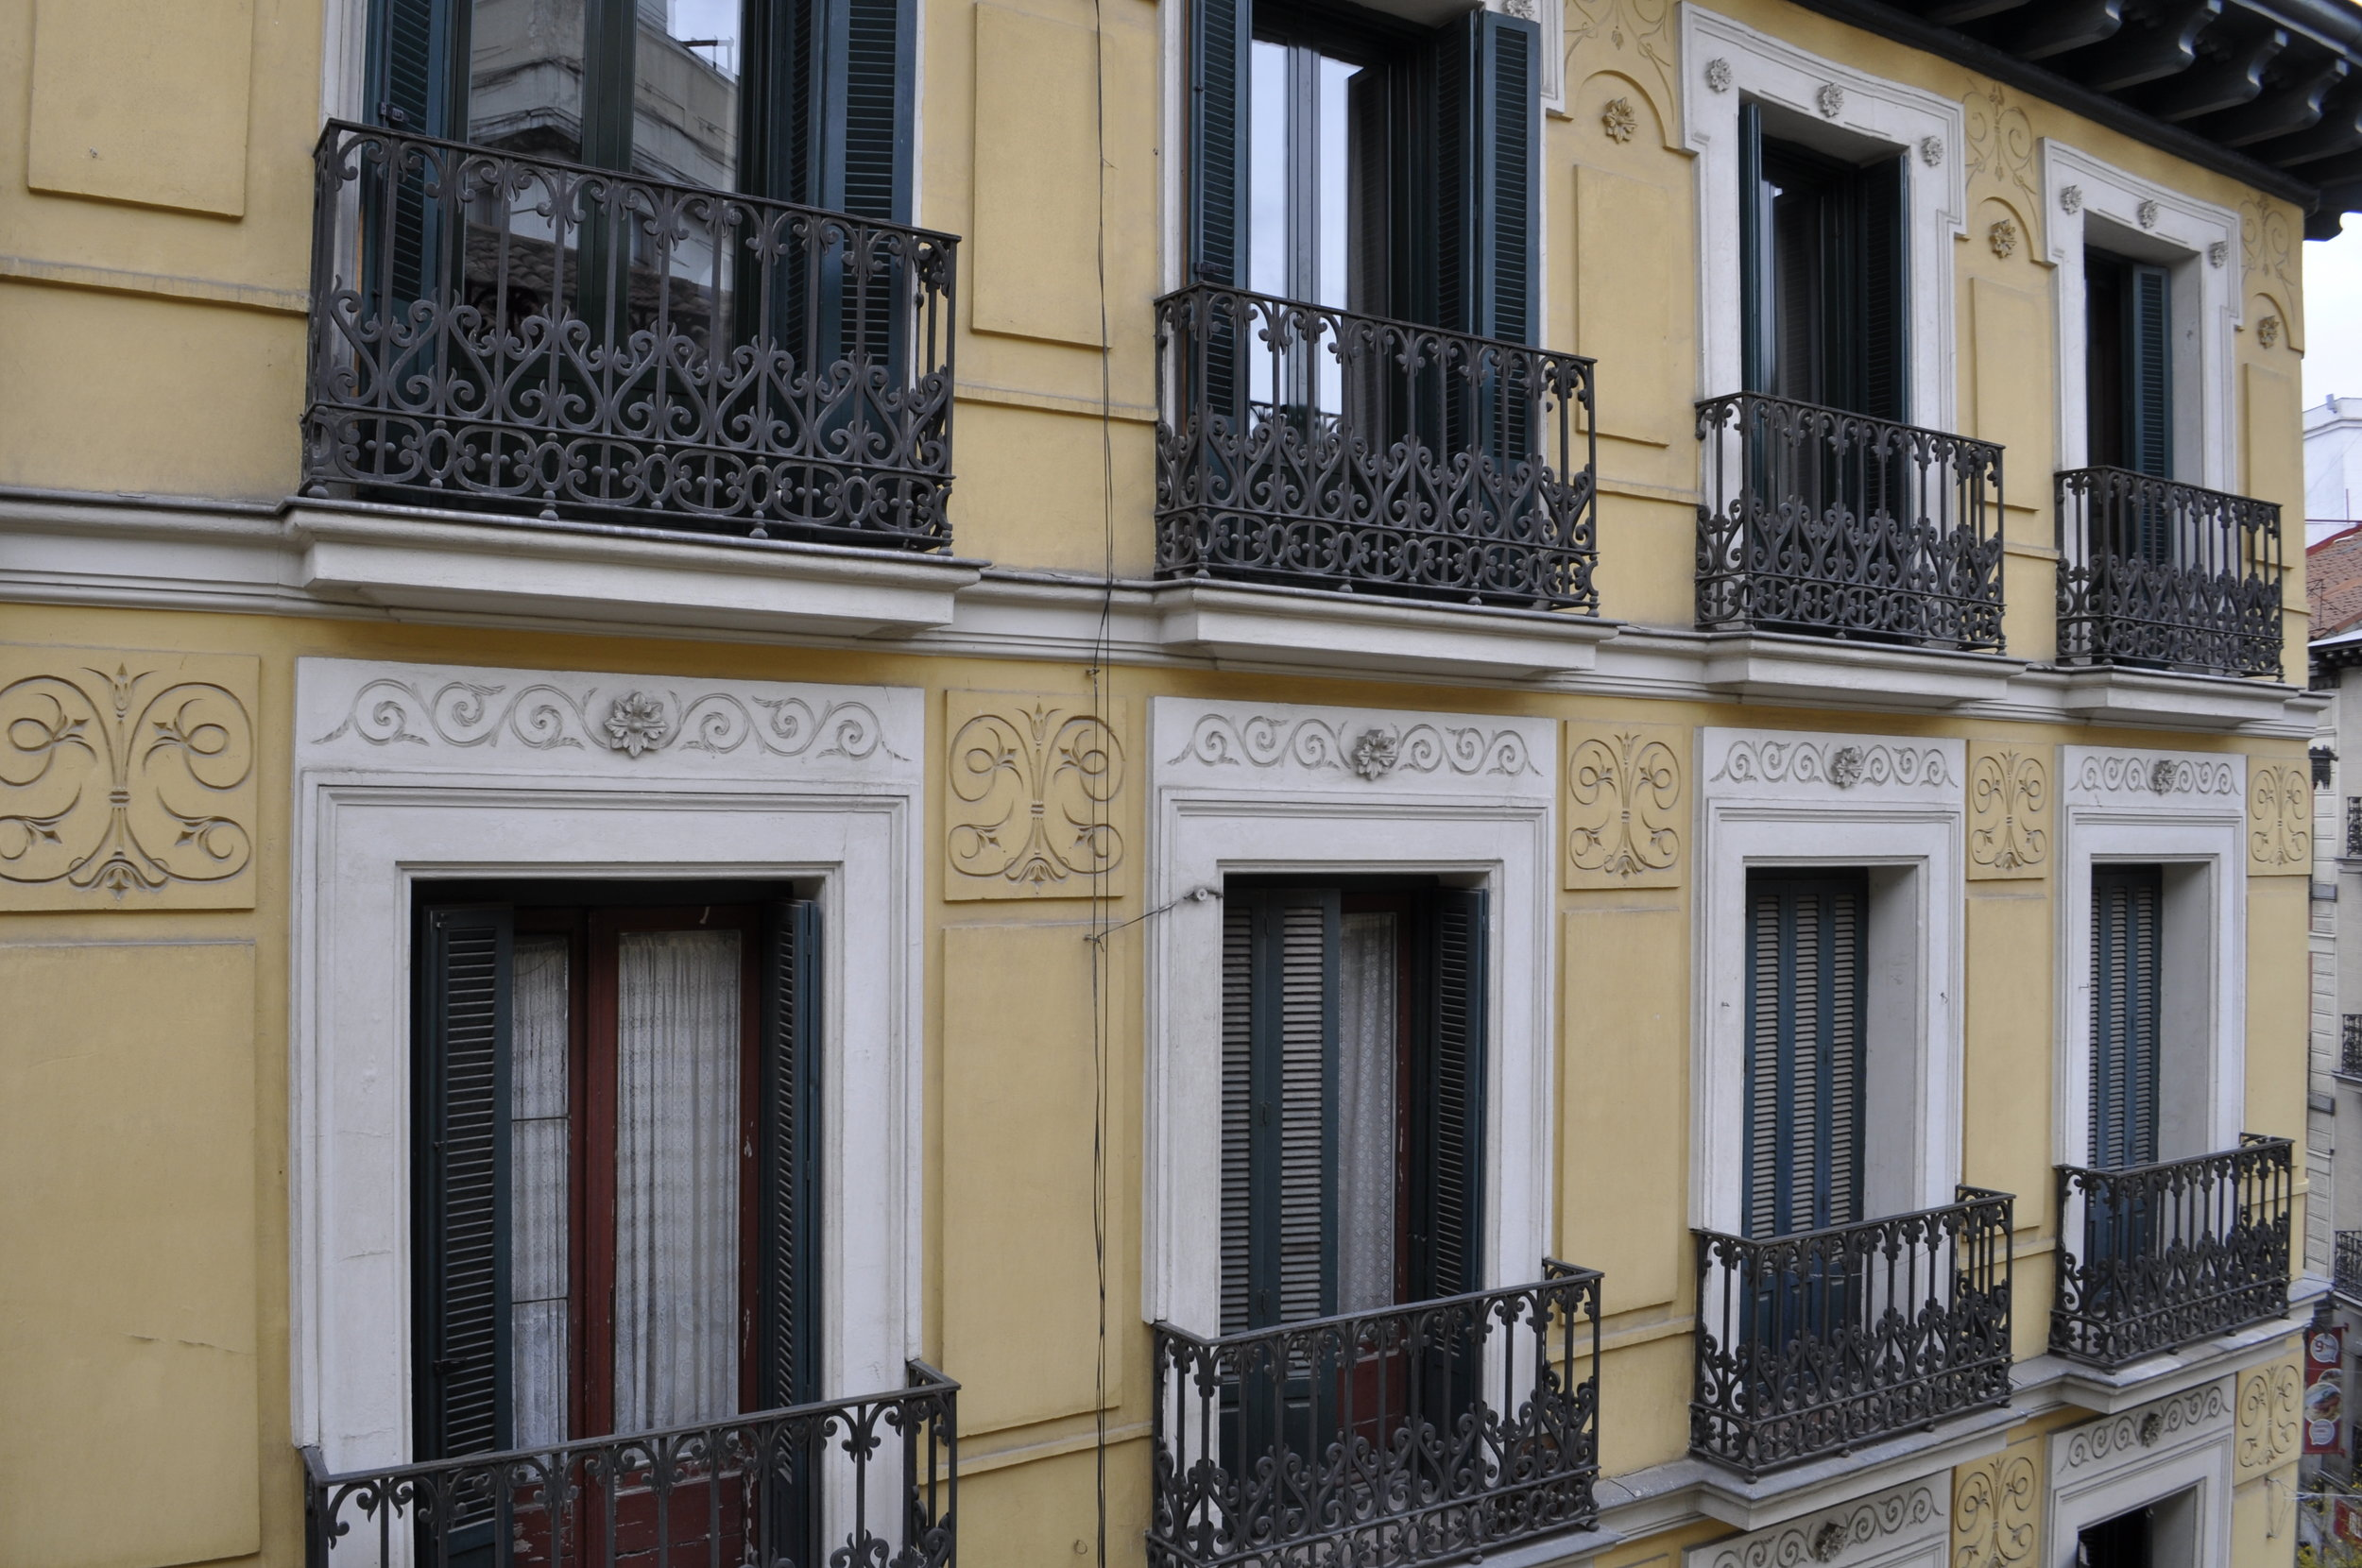 with typical balconies from the 19th century